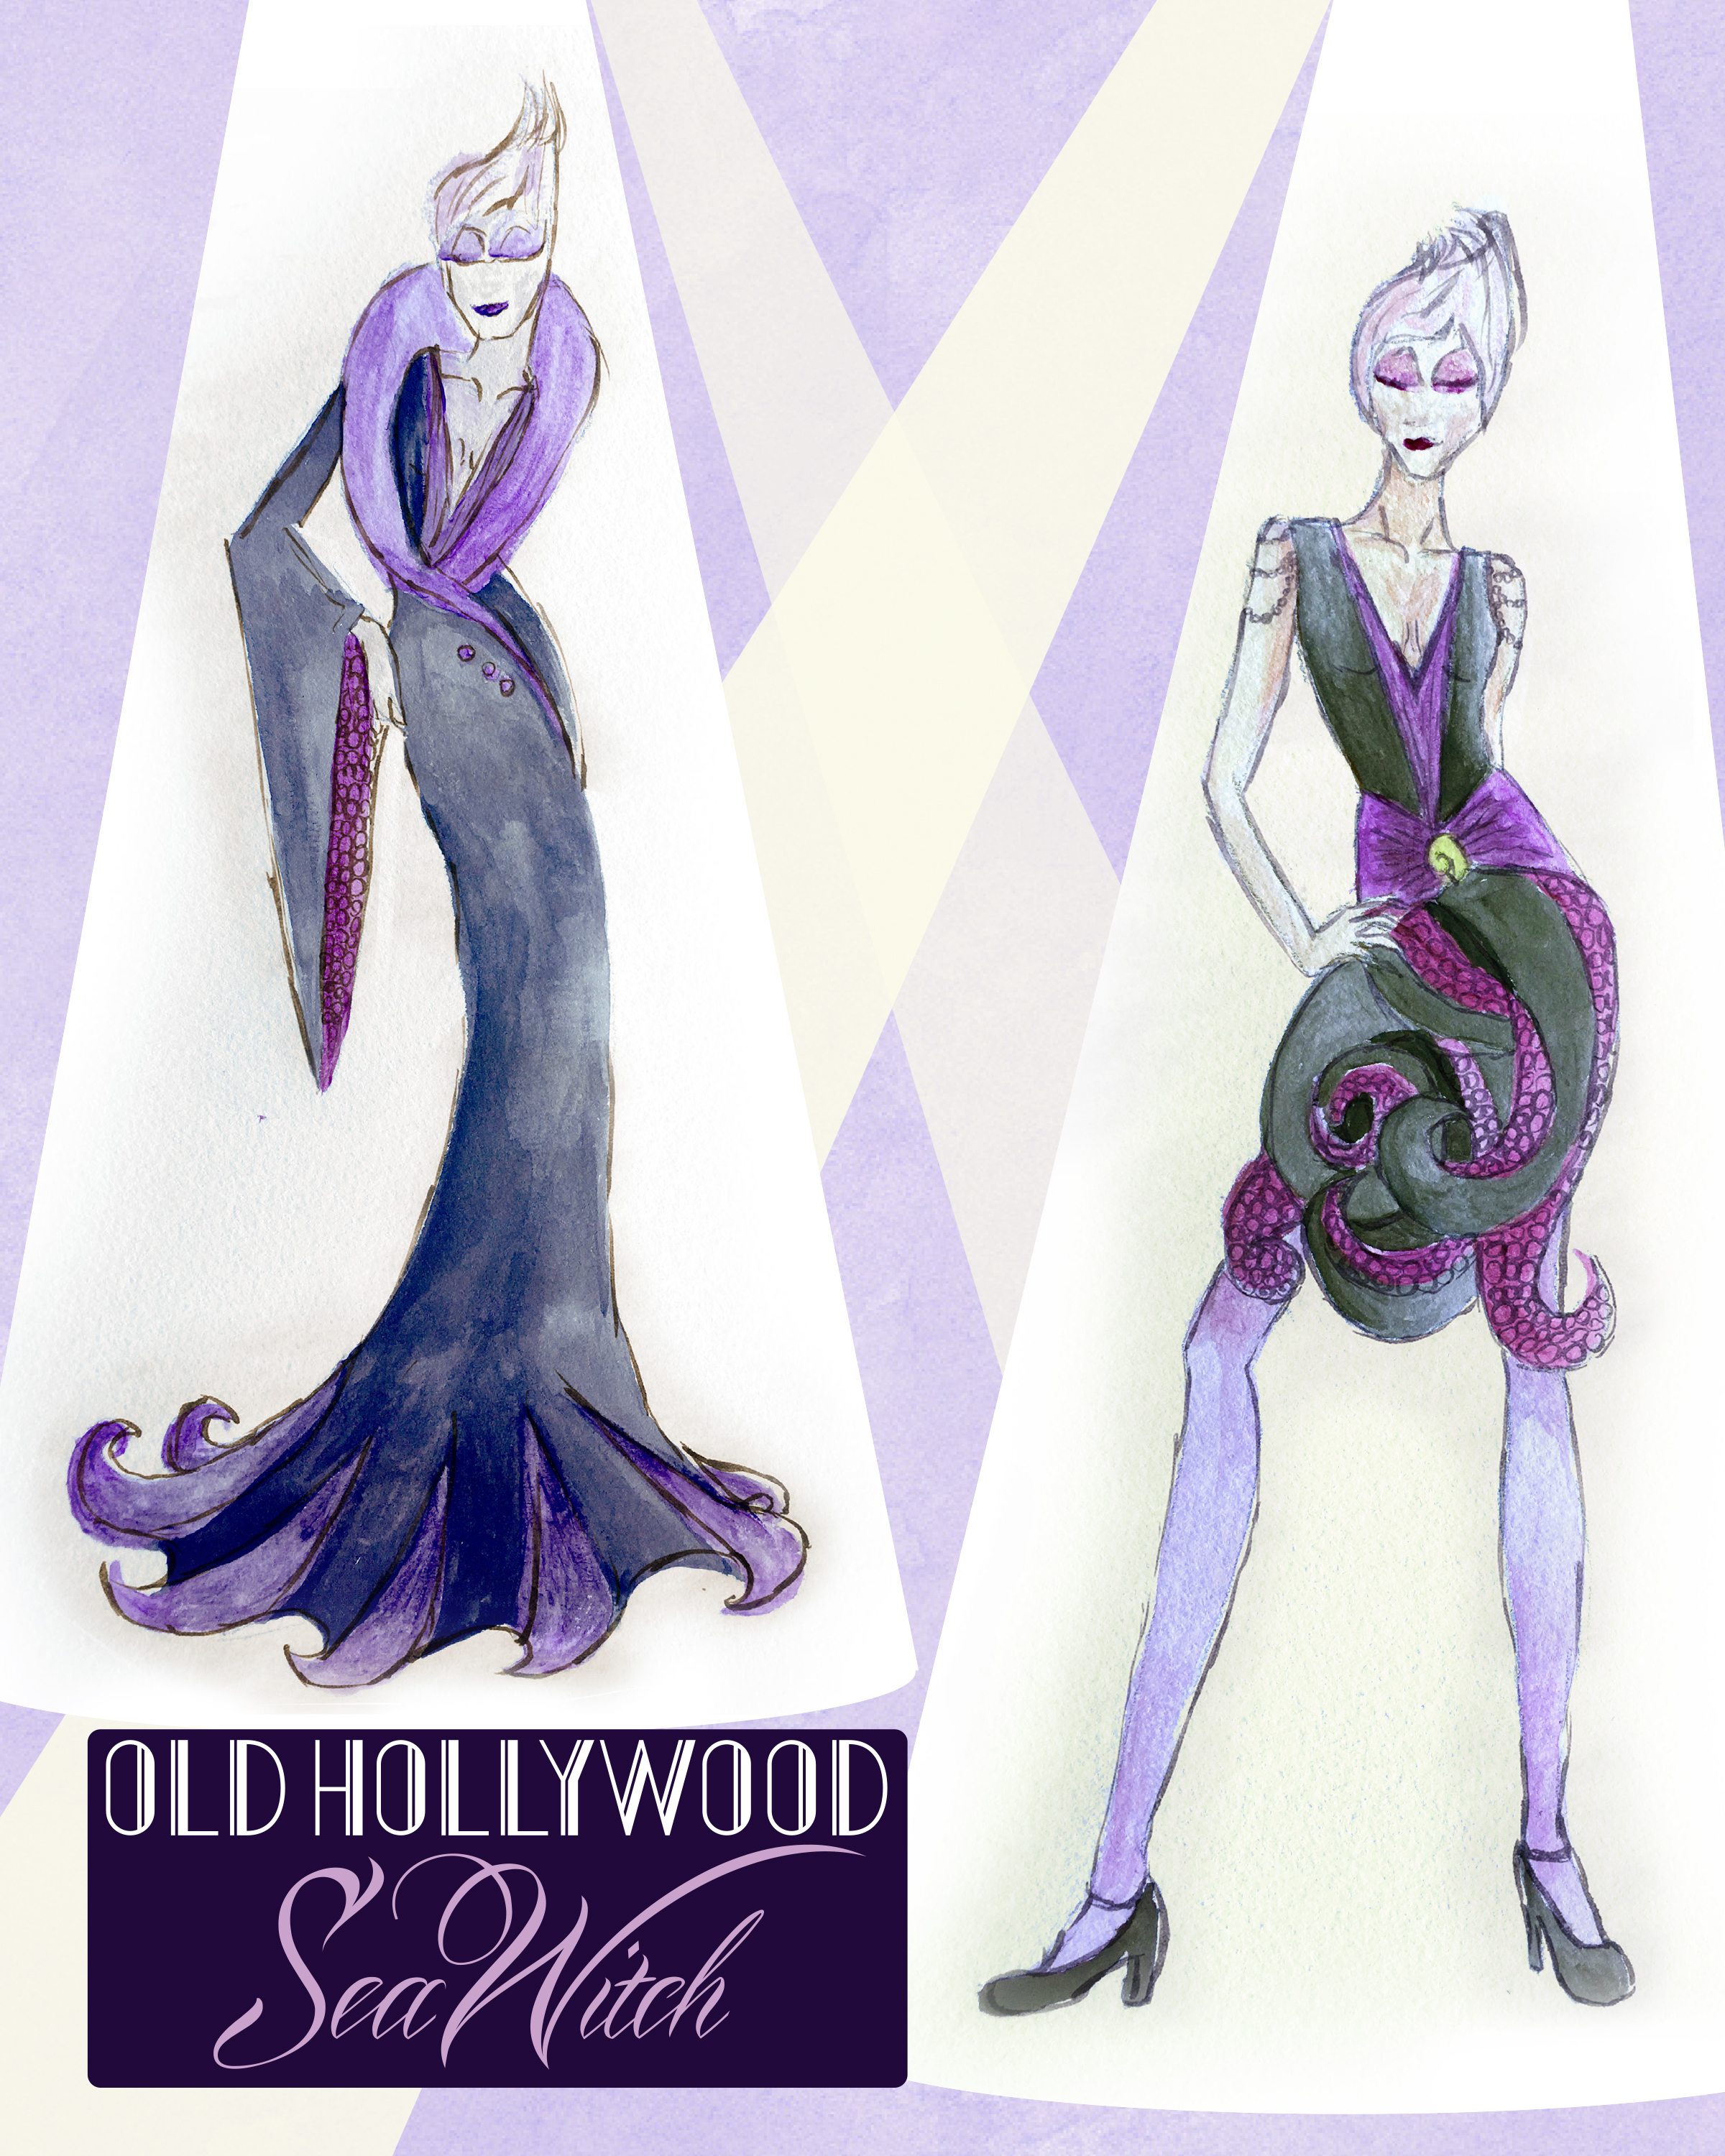 My 2016 Rejected design, Old Hollywood Sea Witch inspired by The Little Mermaid